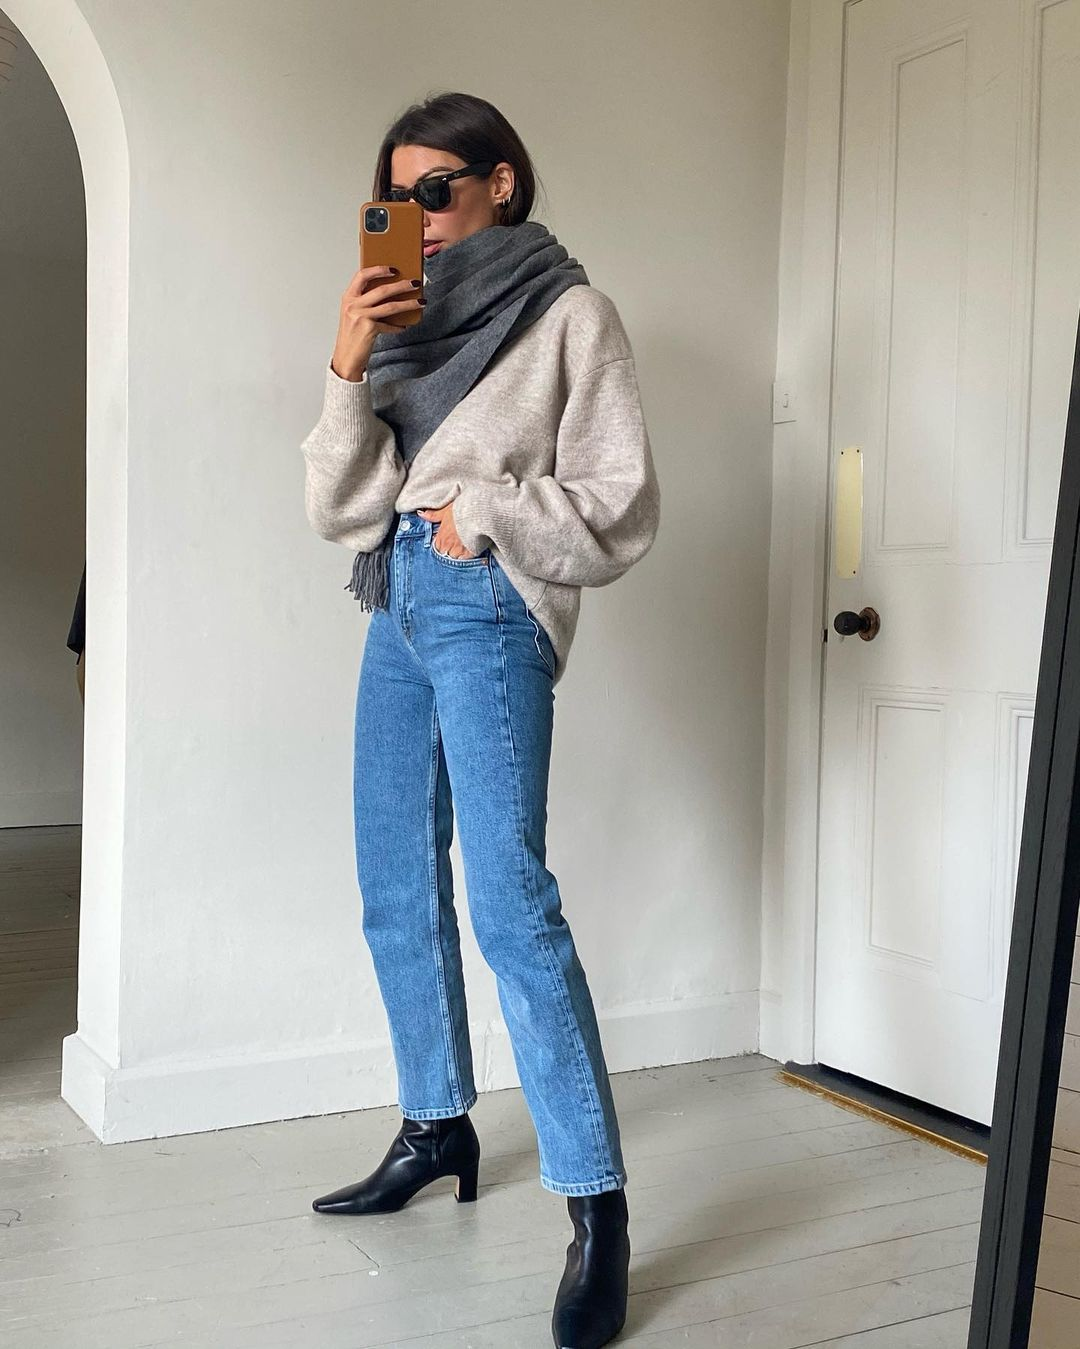 This Outfit Keeps You Warm and Chic on Chilly Fall Days